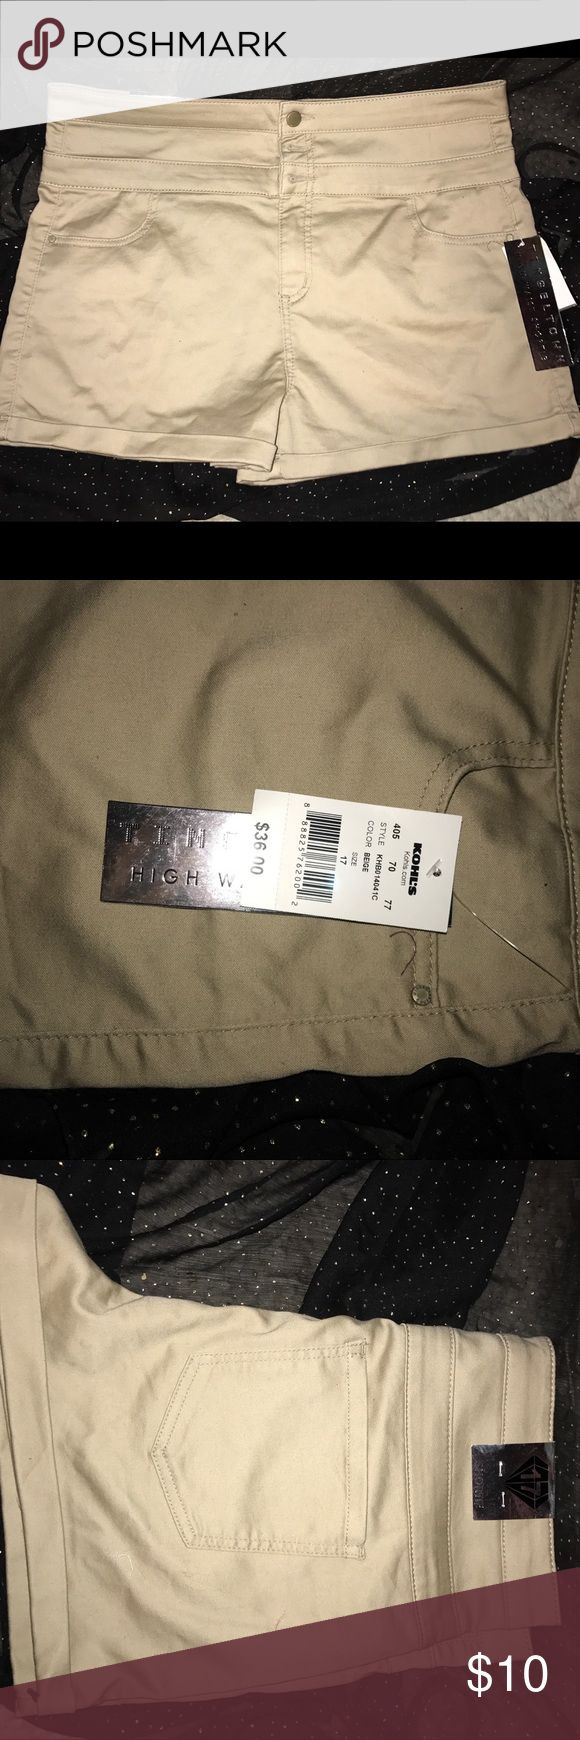 High Waisted Khaki Shorts NWT, size 17 juniors with lots of stretch, would fit women's size 14-18. Torrid for exposure, this brand is sold at charlotte ruse and Kohls torrid Shorts Jean Shorts